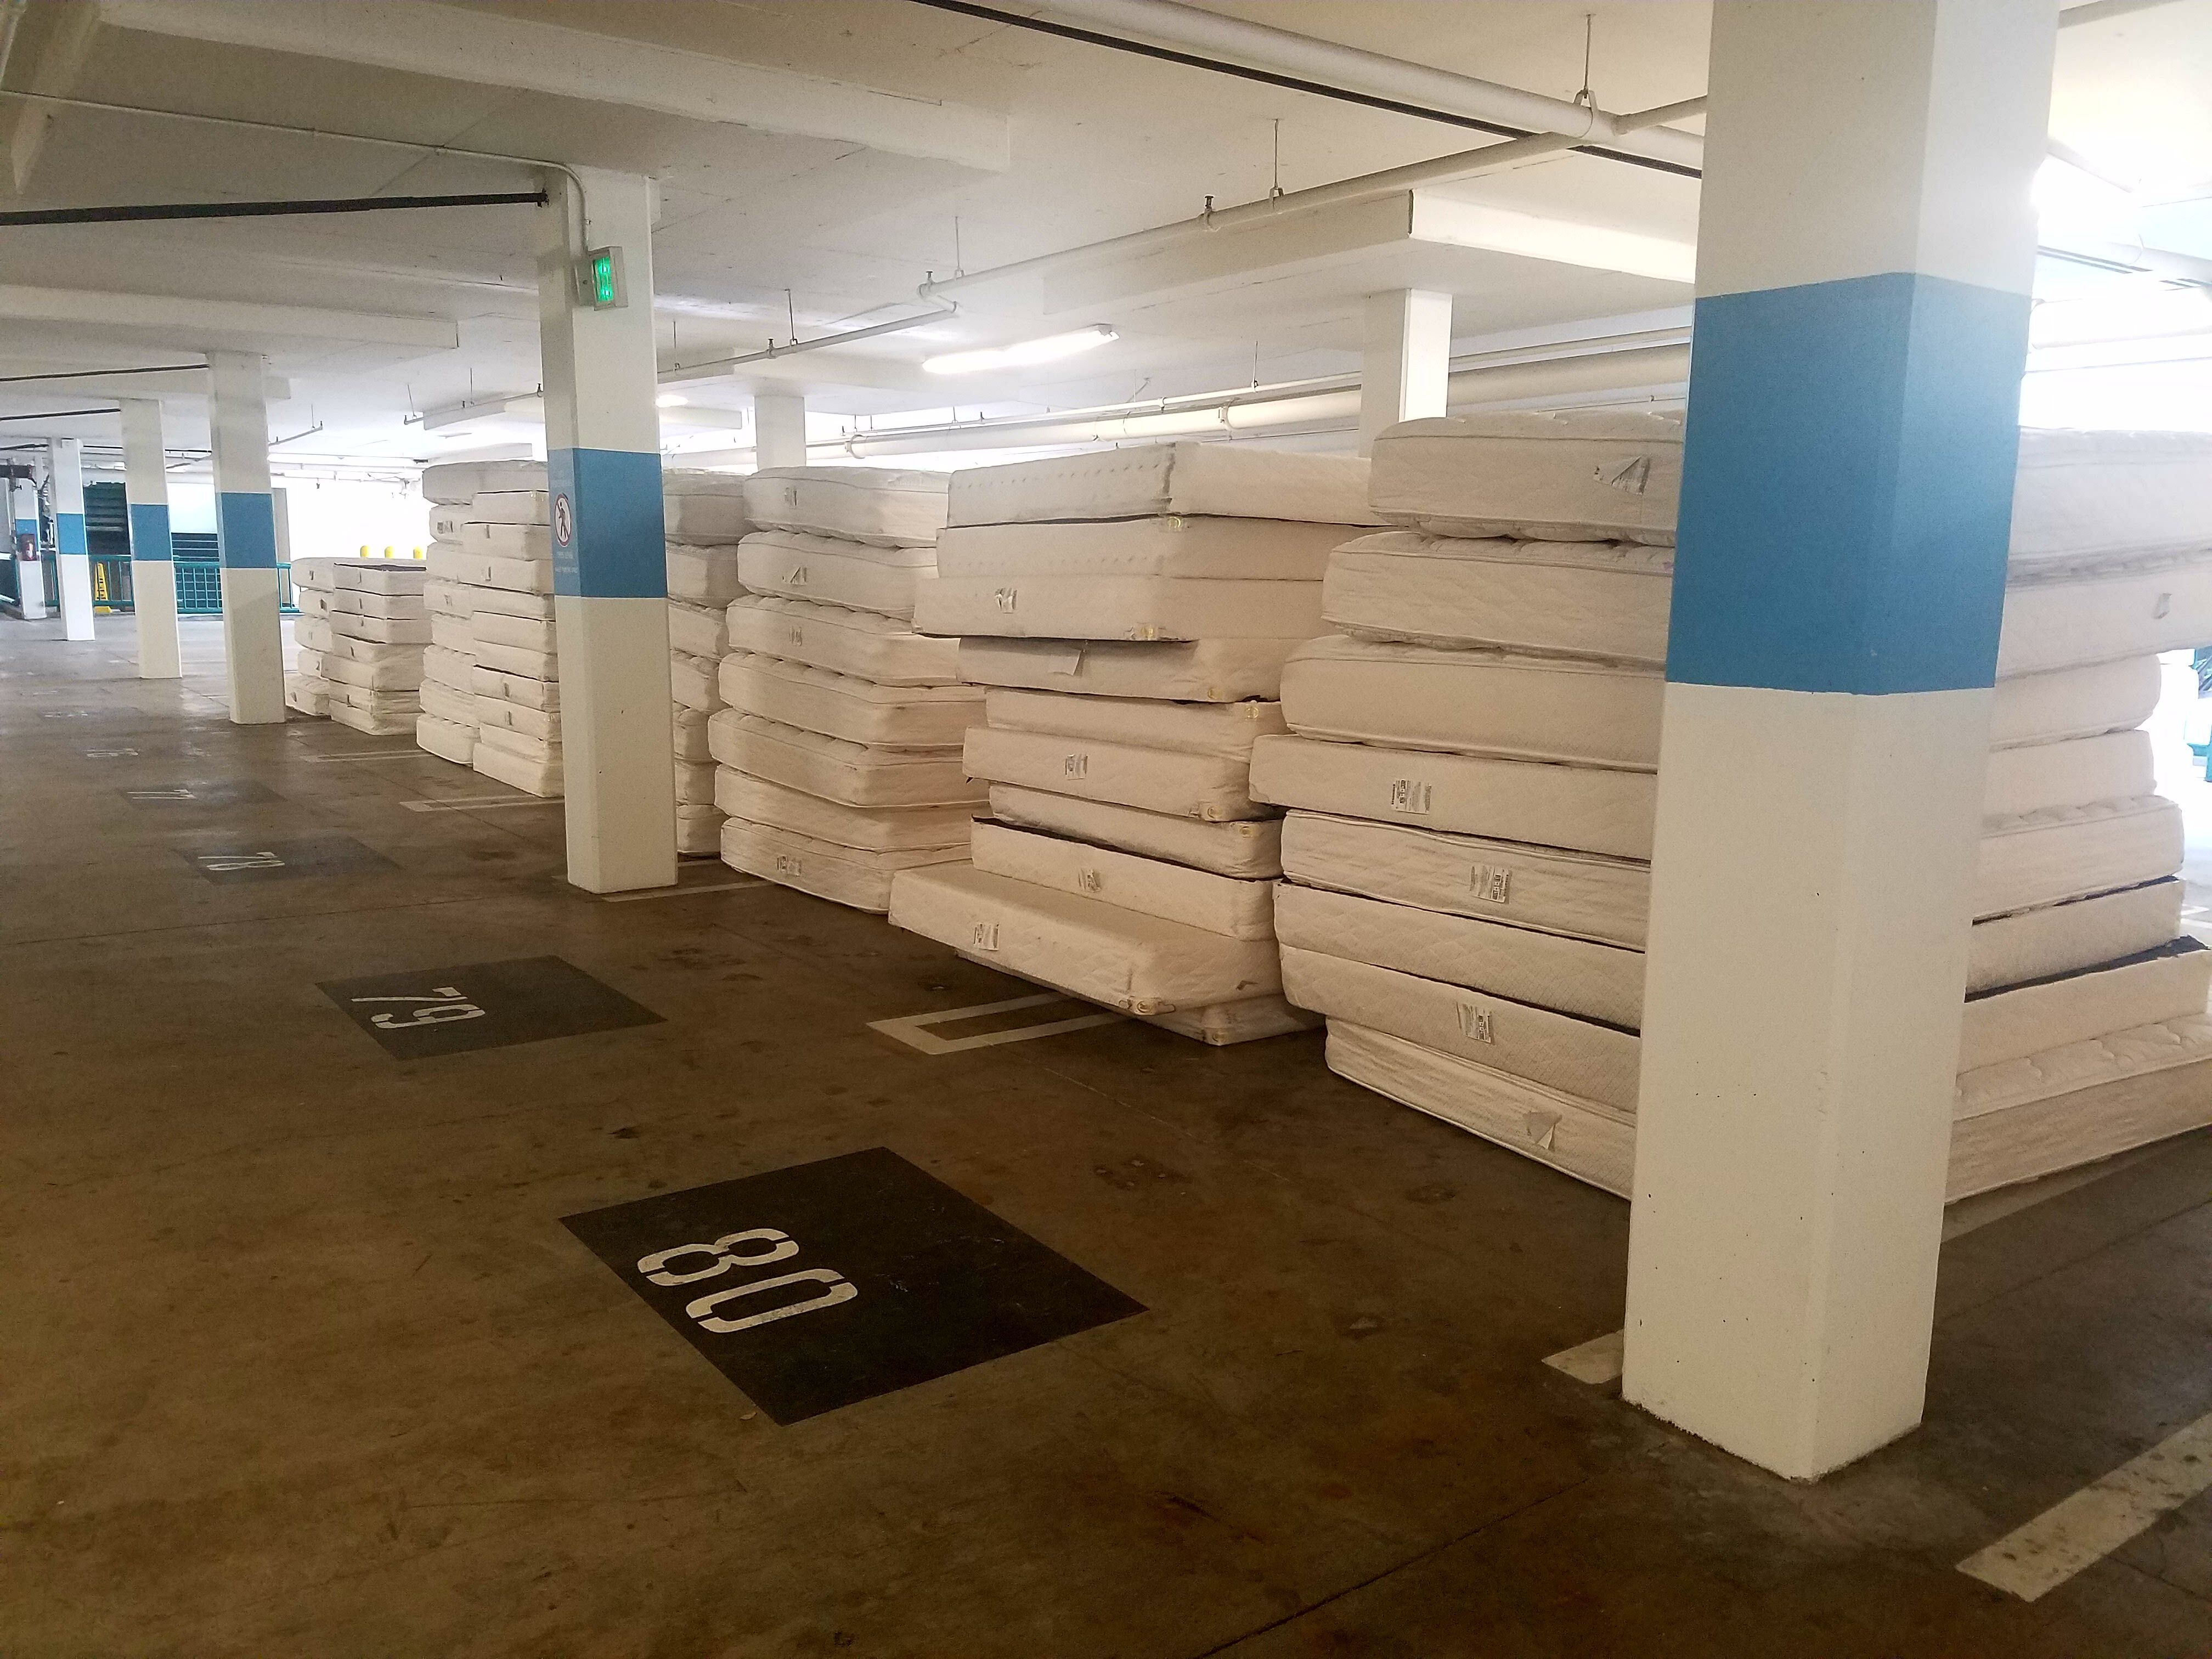 Hilton Mattress Recycling Initiative Everchem Specialty Chemicals